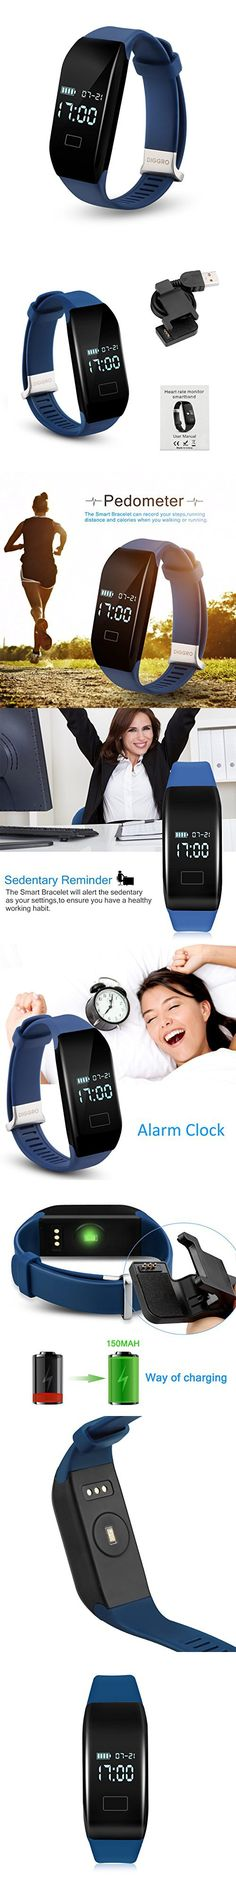 Diggro H3 Heart Rate Activity Tracker Smart Bracelet Fitness Tracker Wristband with Pedometer Calorie Sleep Monitor Sedentary Reminder for Android IOS (Blue)